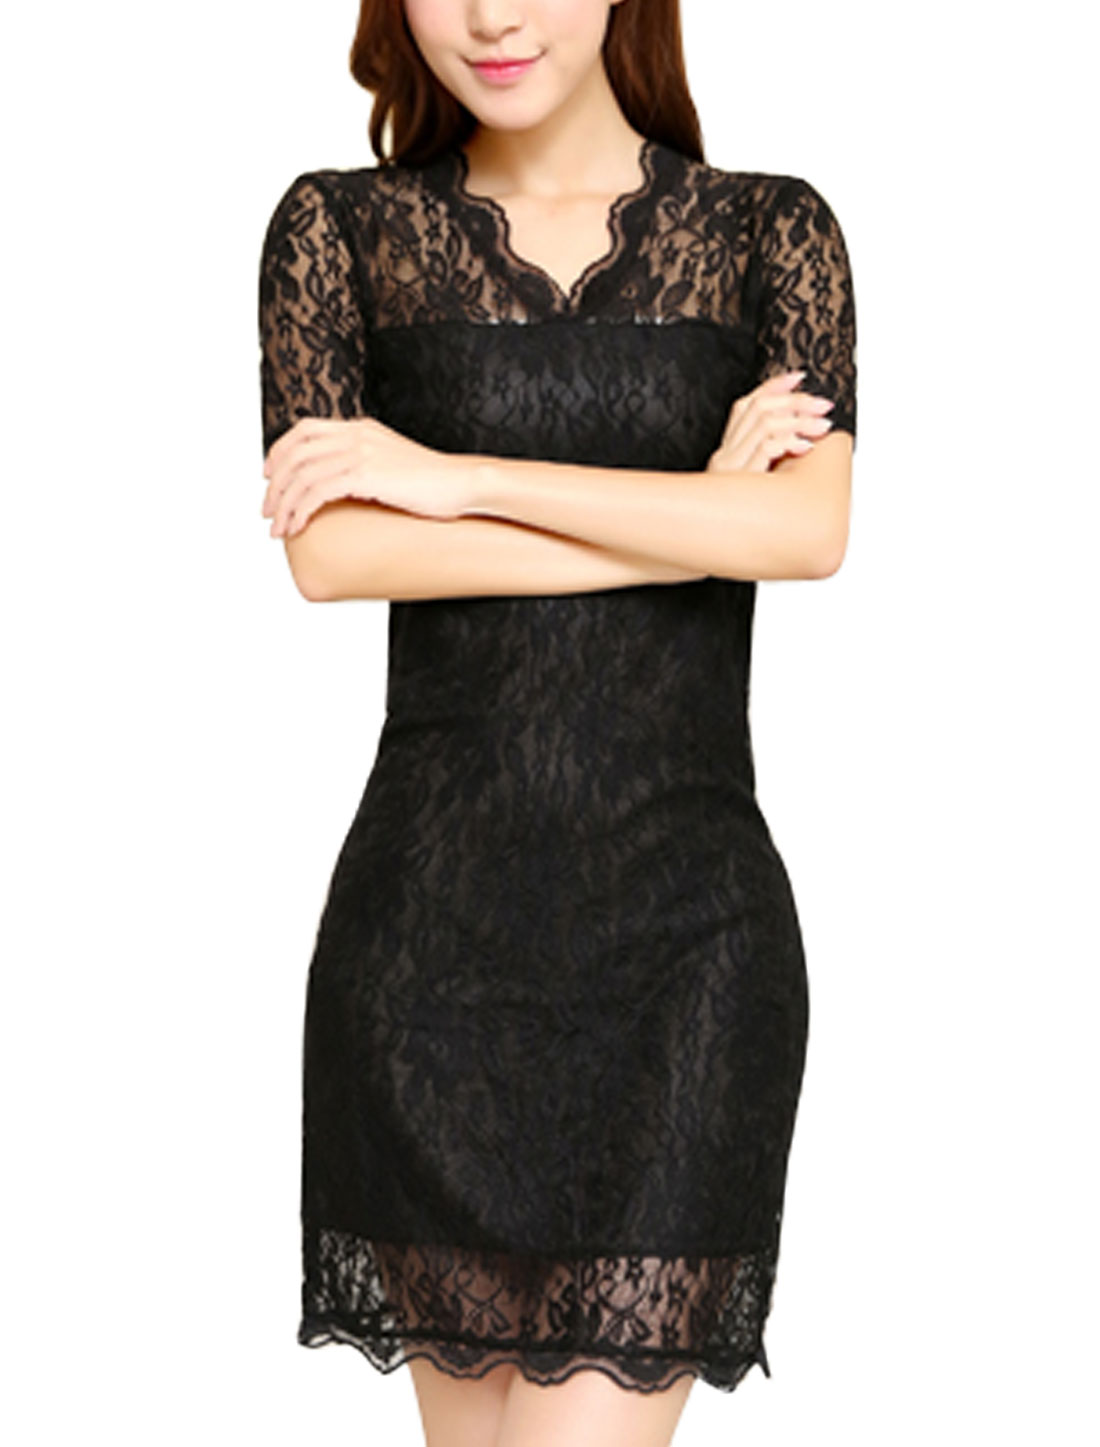 Women V Neckline Design Short Sleeve Semi Sheer Sexy Mini Lace Dress Black S